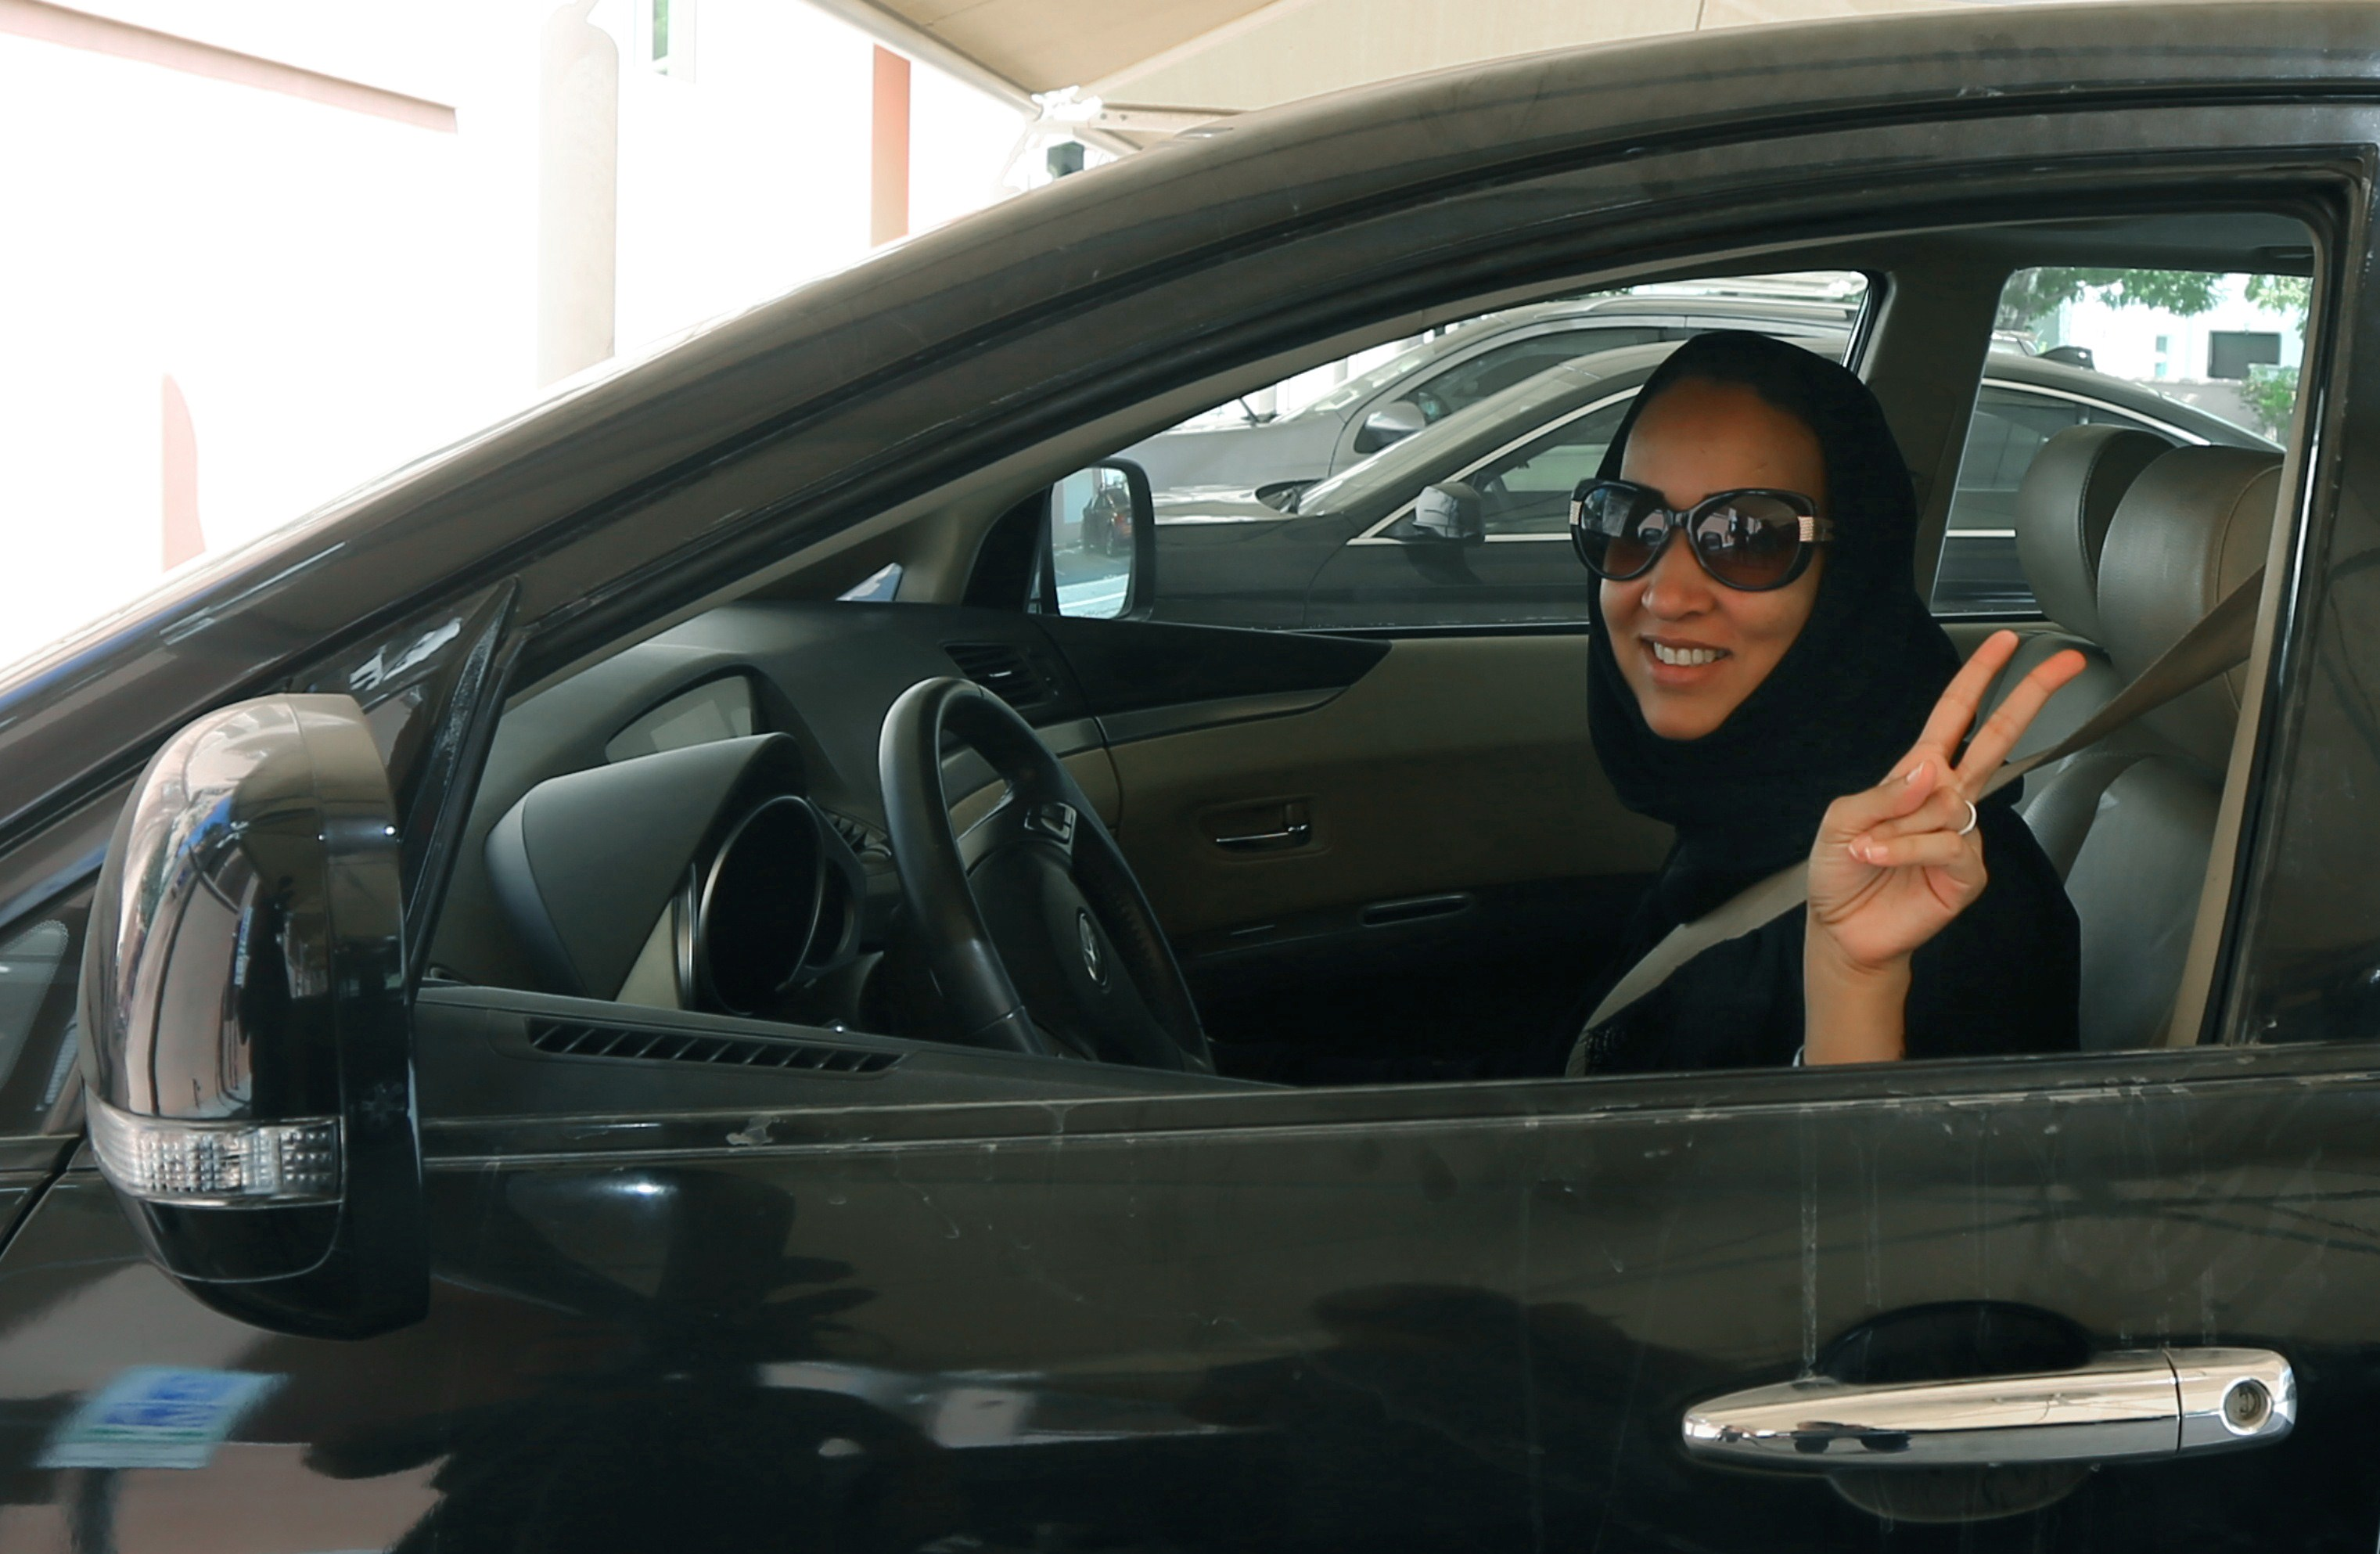 Saudi activist Manal Al Sharif, who now lives in Dubai, flashes the sign for victory as she drives her car in the Gulf Emirate city on 22 October in solidarity with Saudi women preparing to take to the wheel on 26 October (AFP Photo)